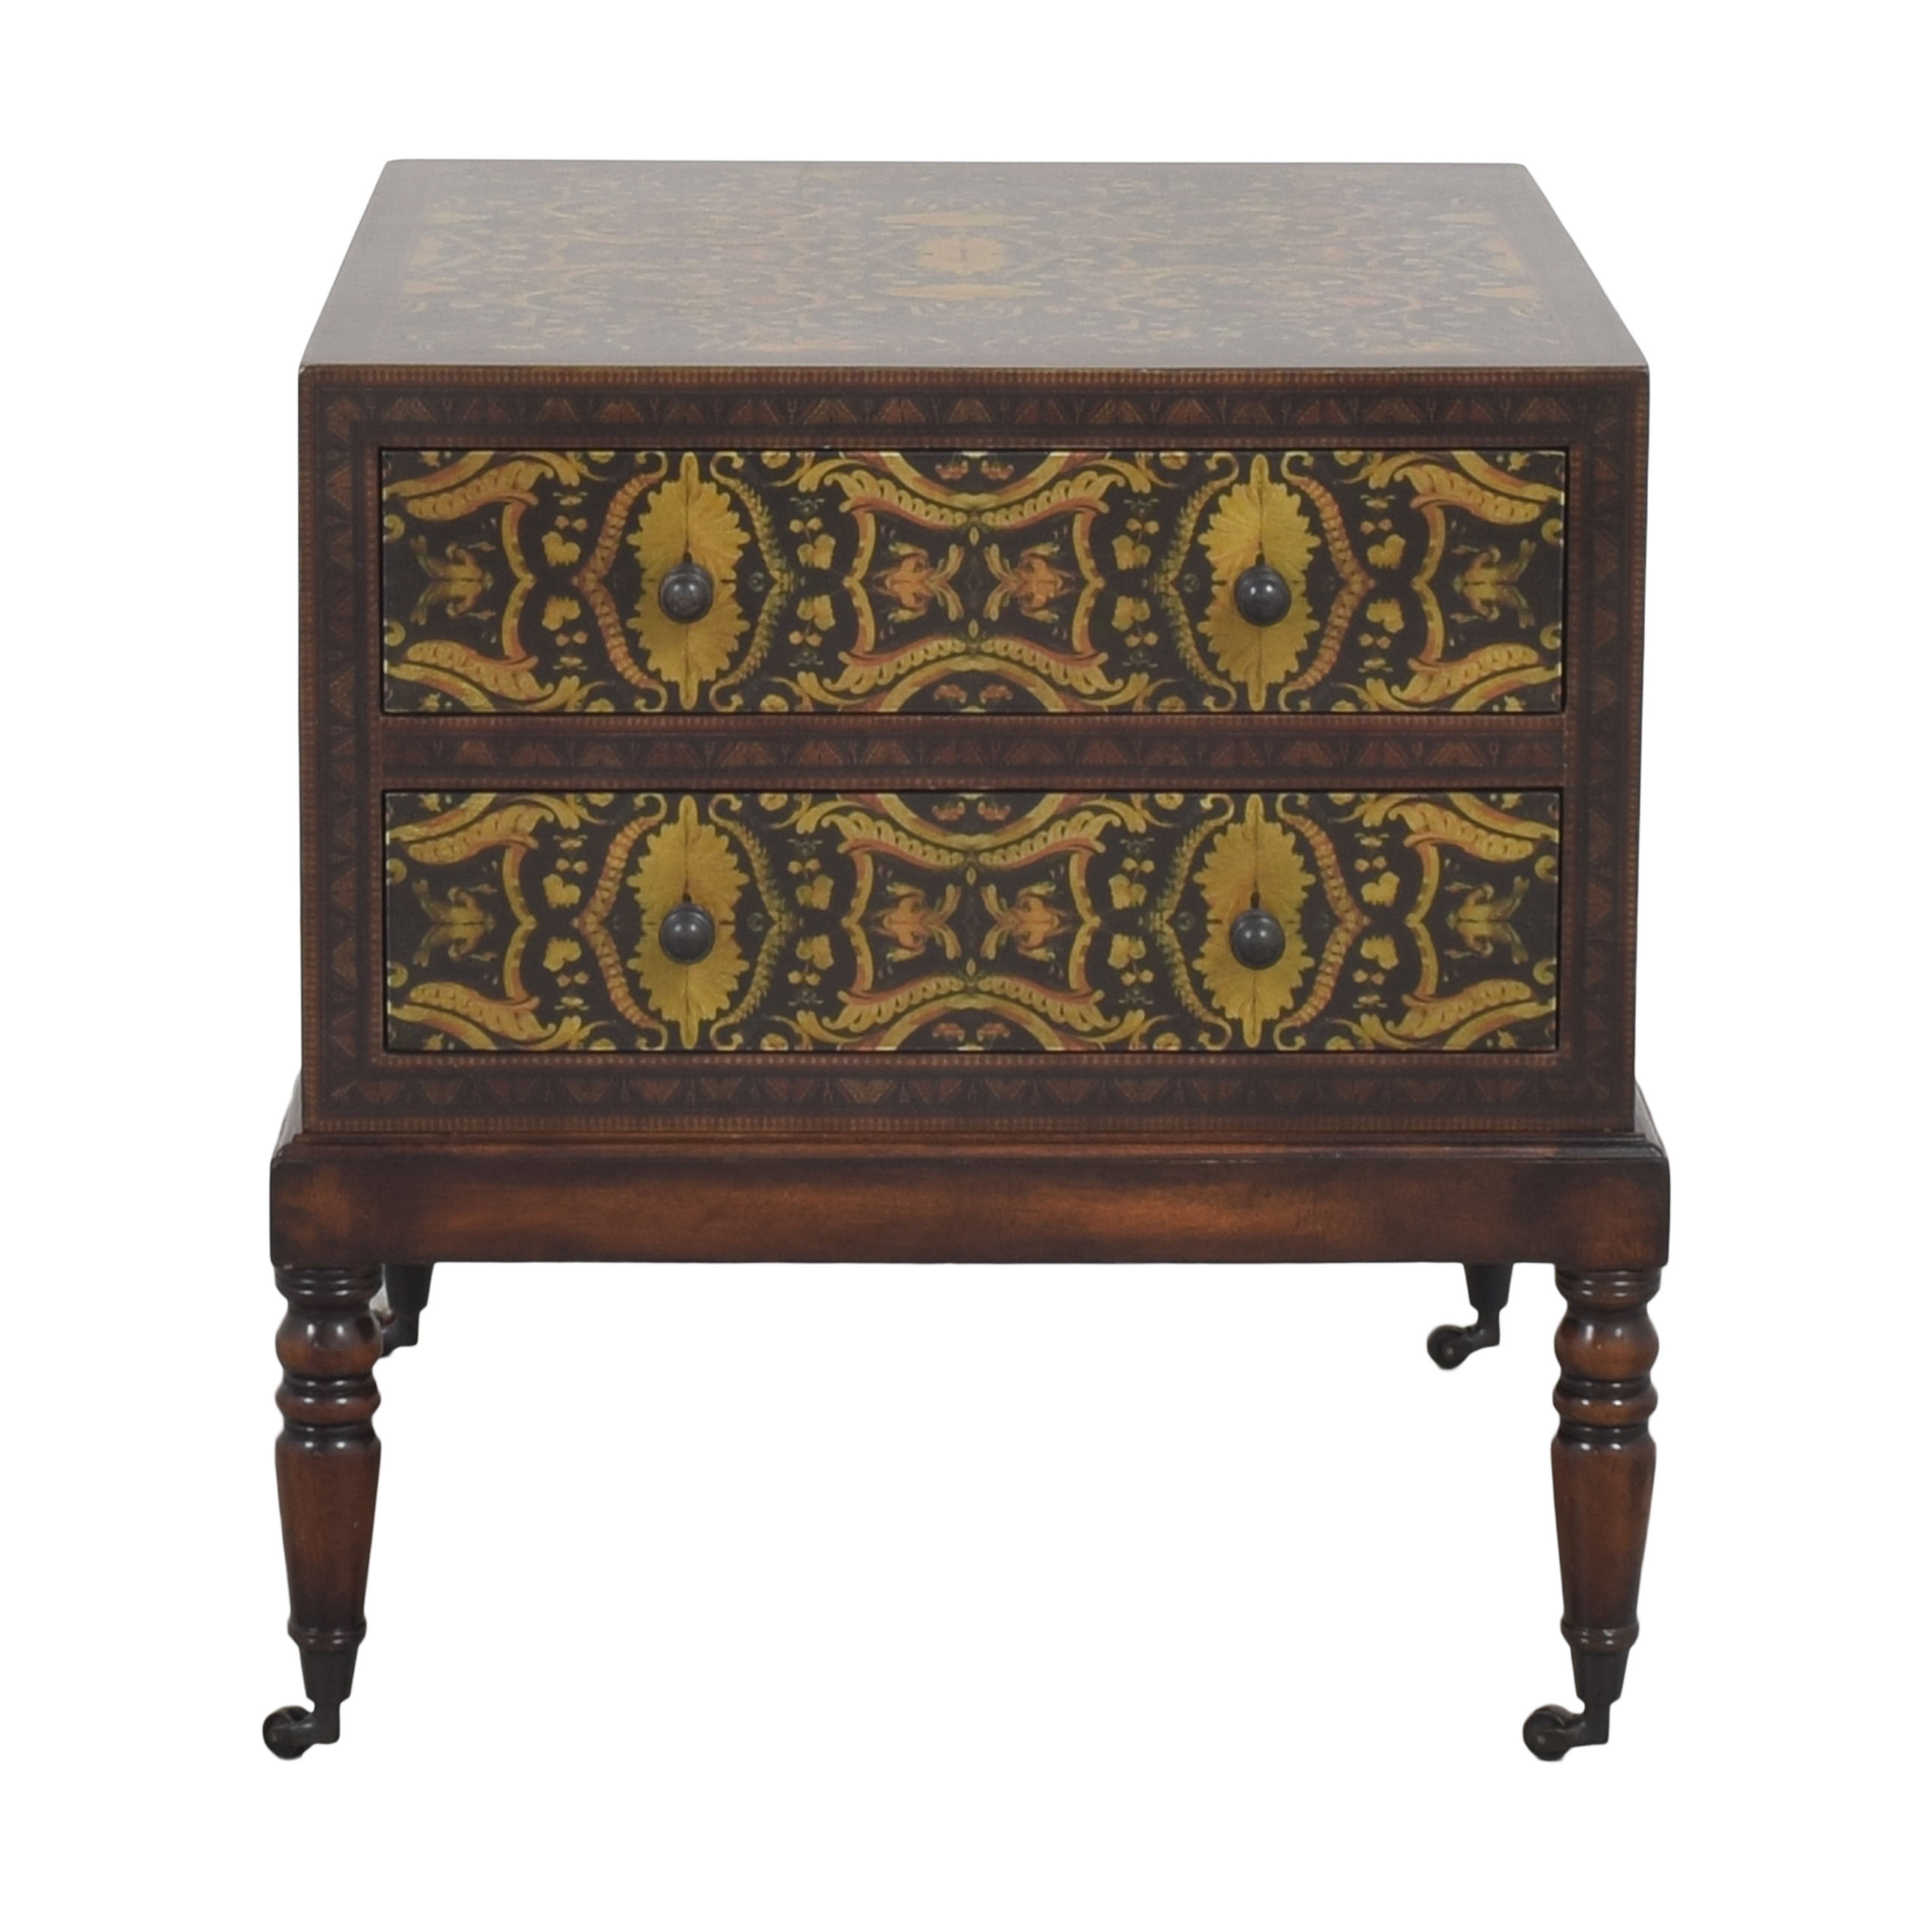 buy Theodore Alexander Theodore Alexander Decoupage Bedside Chest online